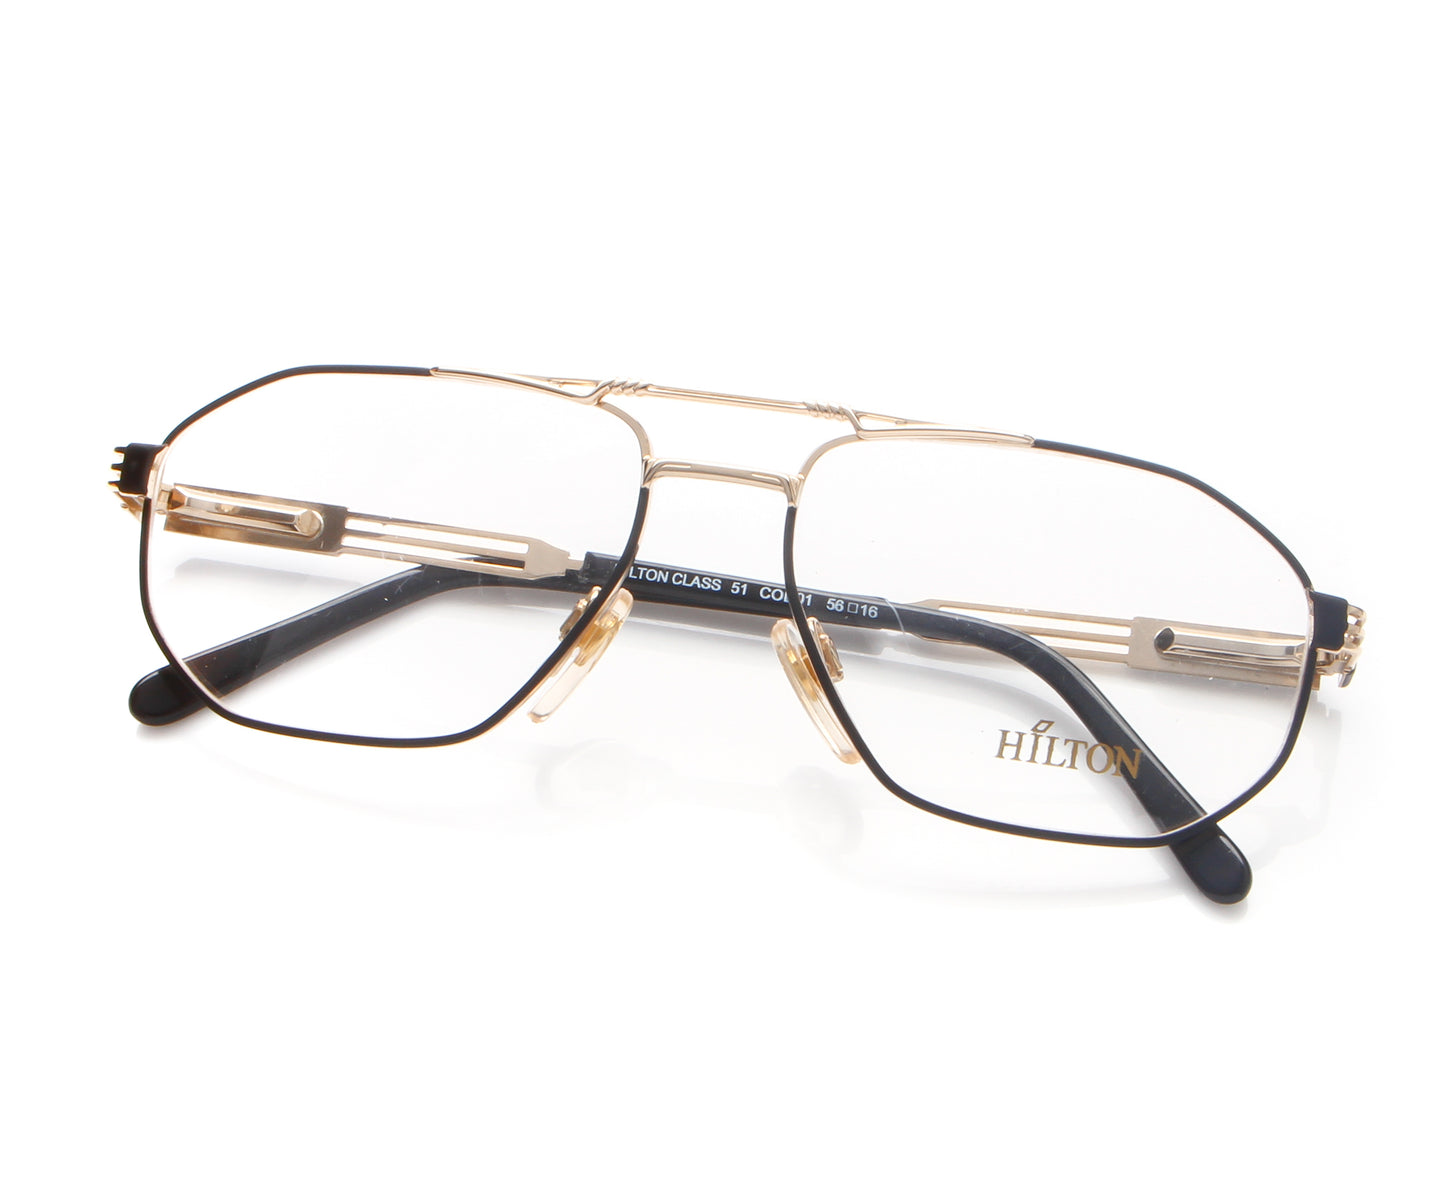 Vintage Hilton Class 51 01 22 KGP Thumb, Hilton , glasses frames, eyeglasses online, eyeglass frames, mens glasses, womens glasses, buy glasses online, designer eyeglasses, vintage sunglasses, retro sunglasses, vintage glasses, sunglass, eyeglass, glasses, lens, vintage frames company, vf